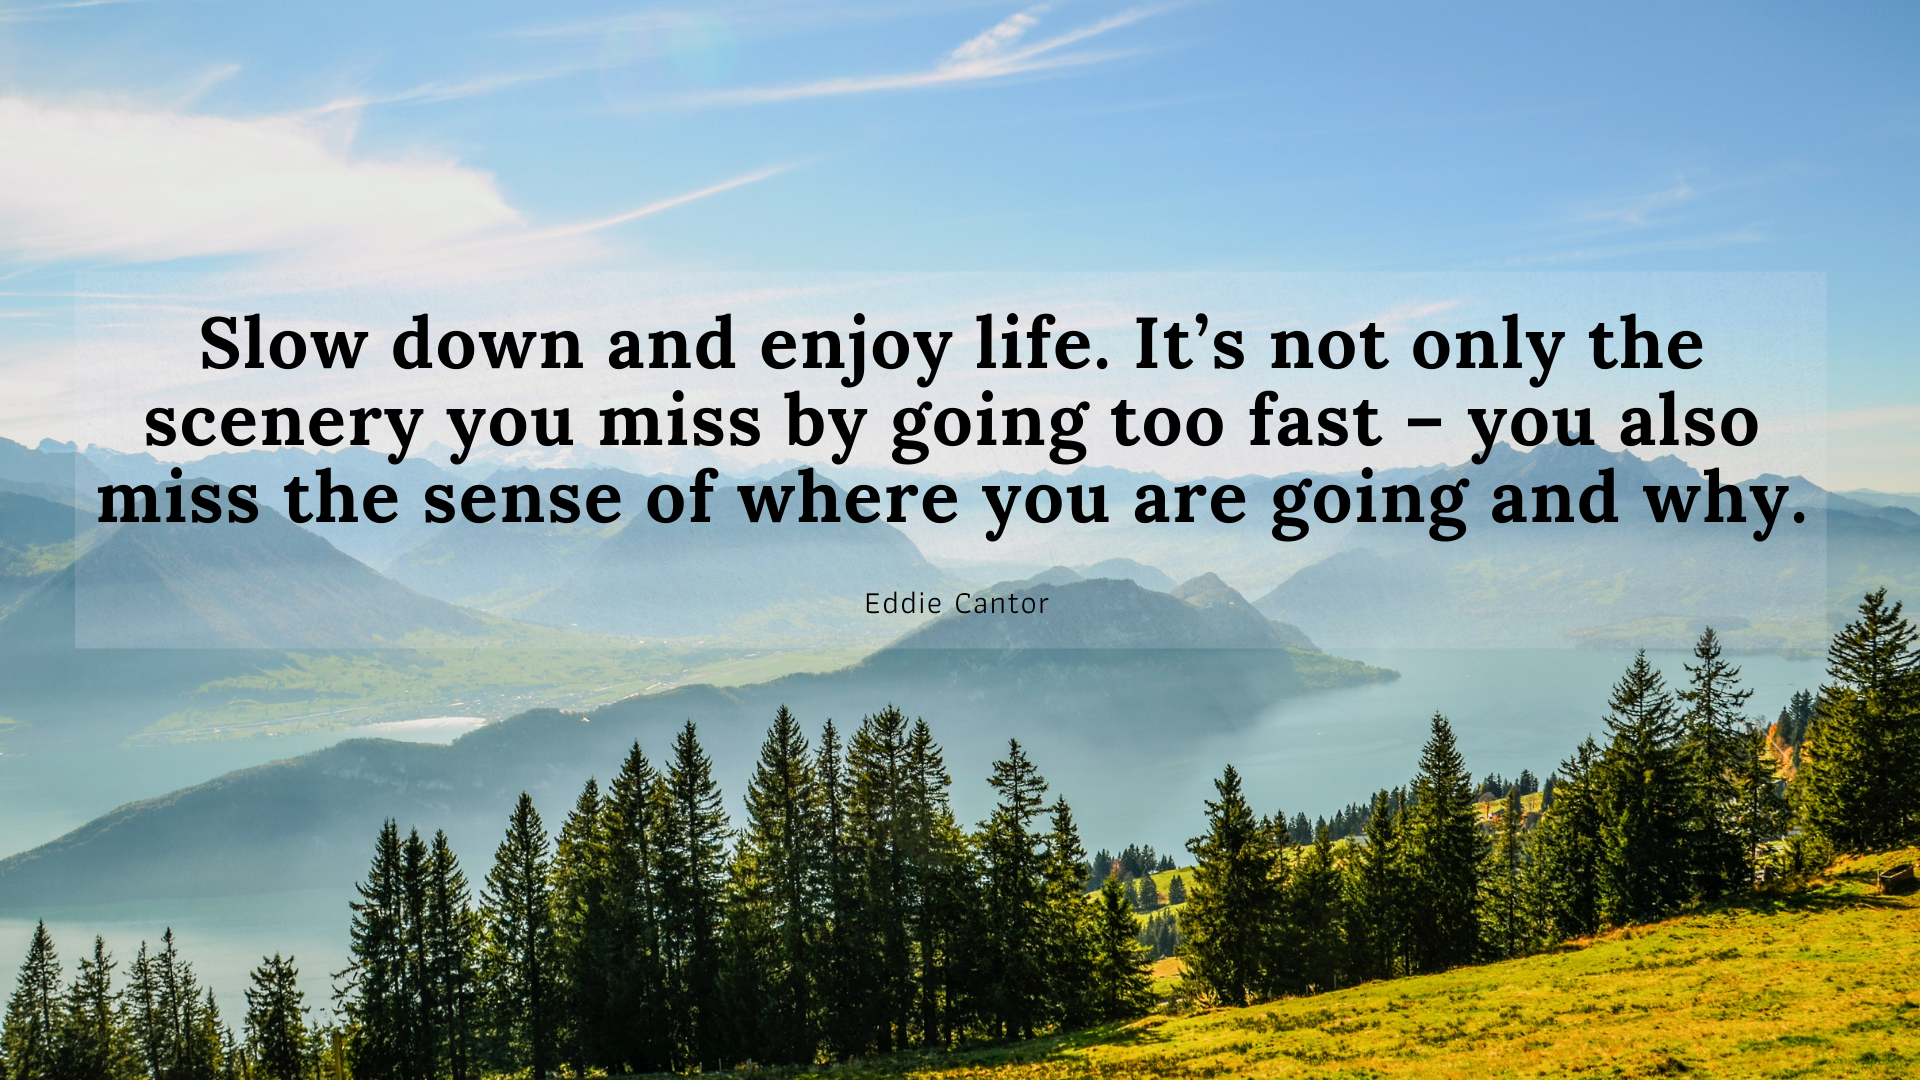 Slow down and enjoy life. It's not only the scenery you miss by going too fast – you also miss the sense of where you are going and why. – Eddie Cantor[1920×1080]